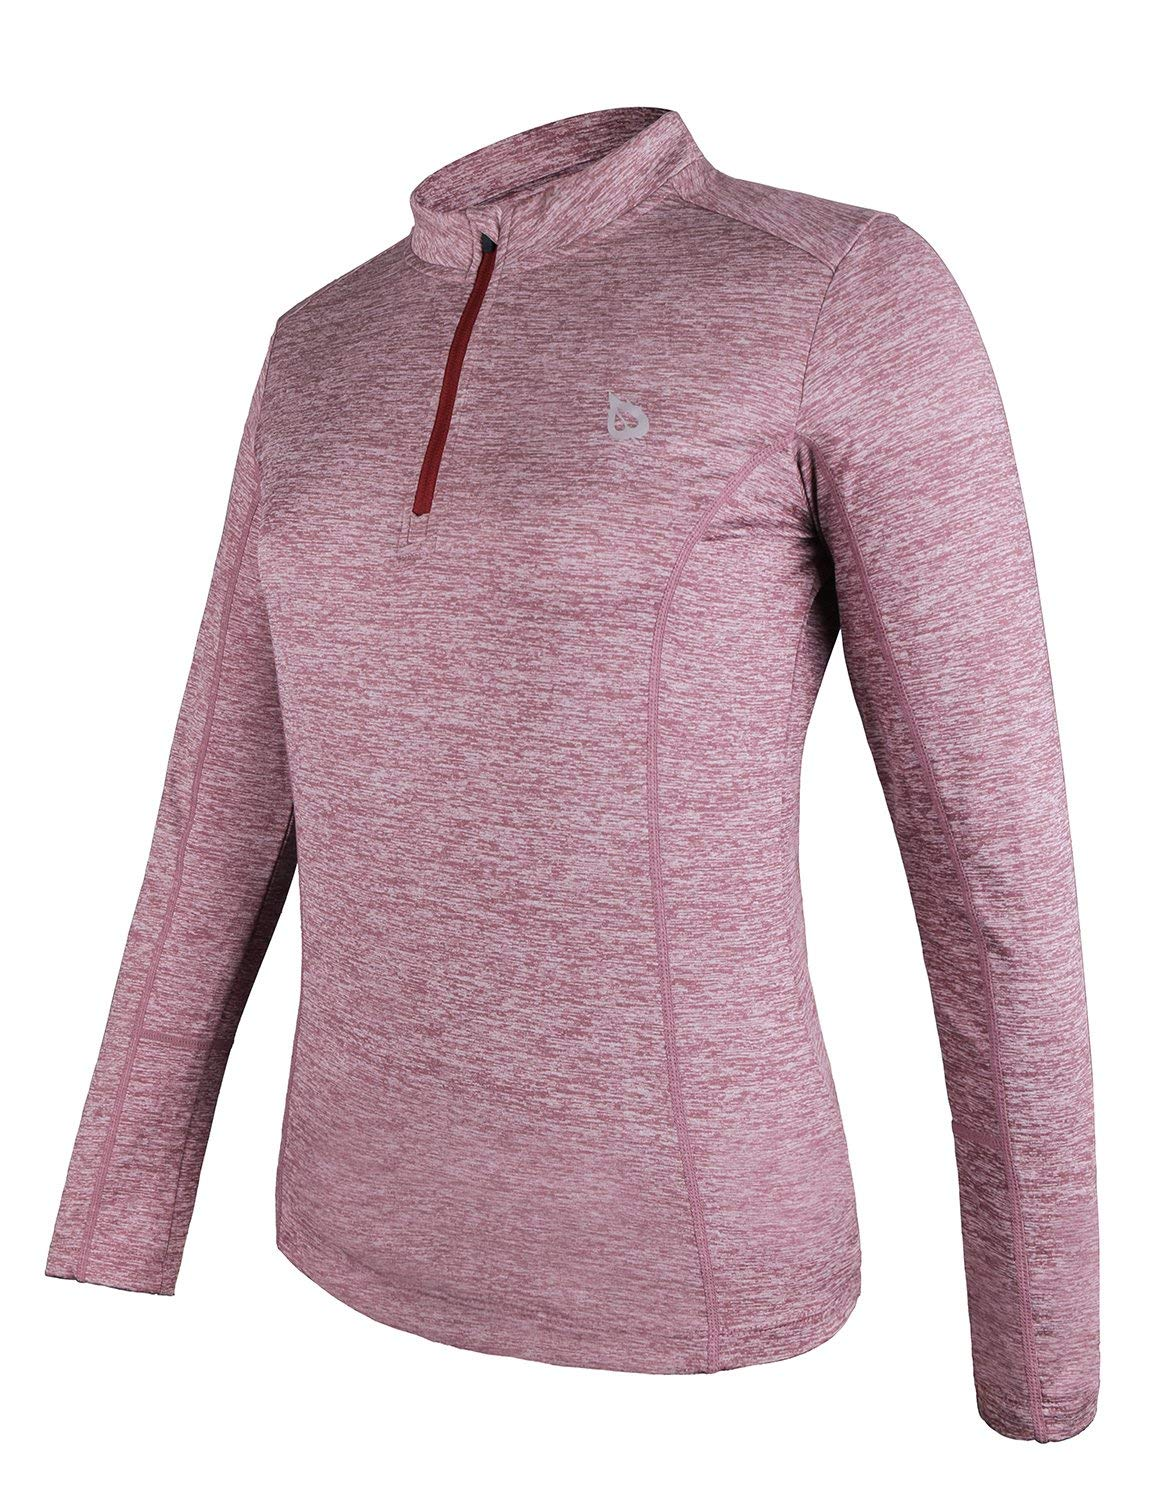 BALEAF Women's Thermal Running Shirts Long Sleeve 1/4 Zip Pullover Red XS by BALEAF